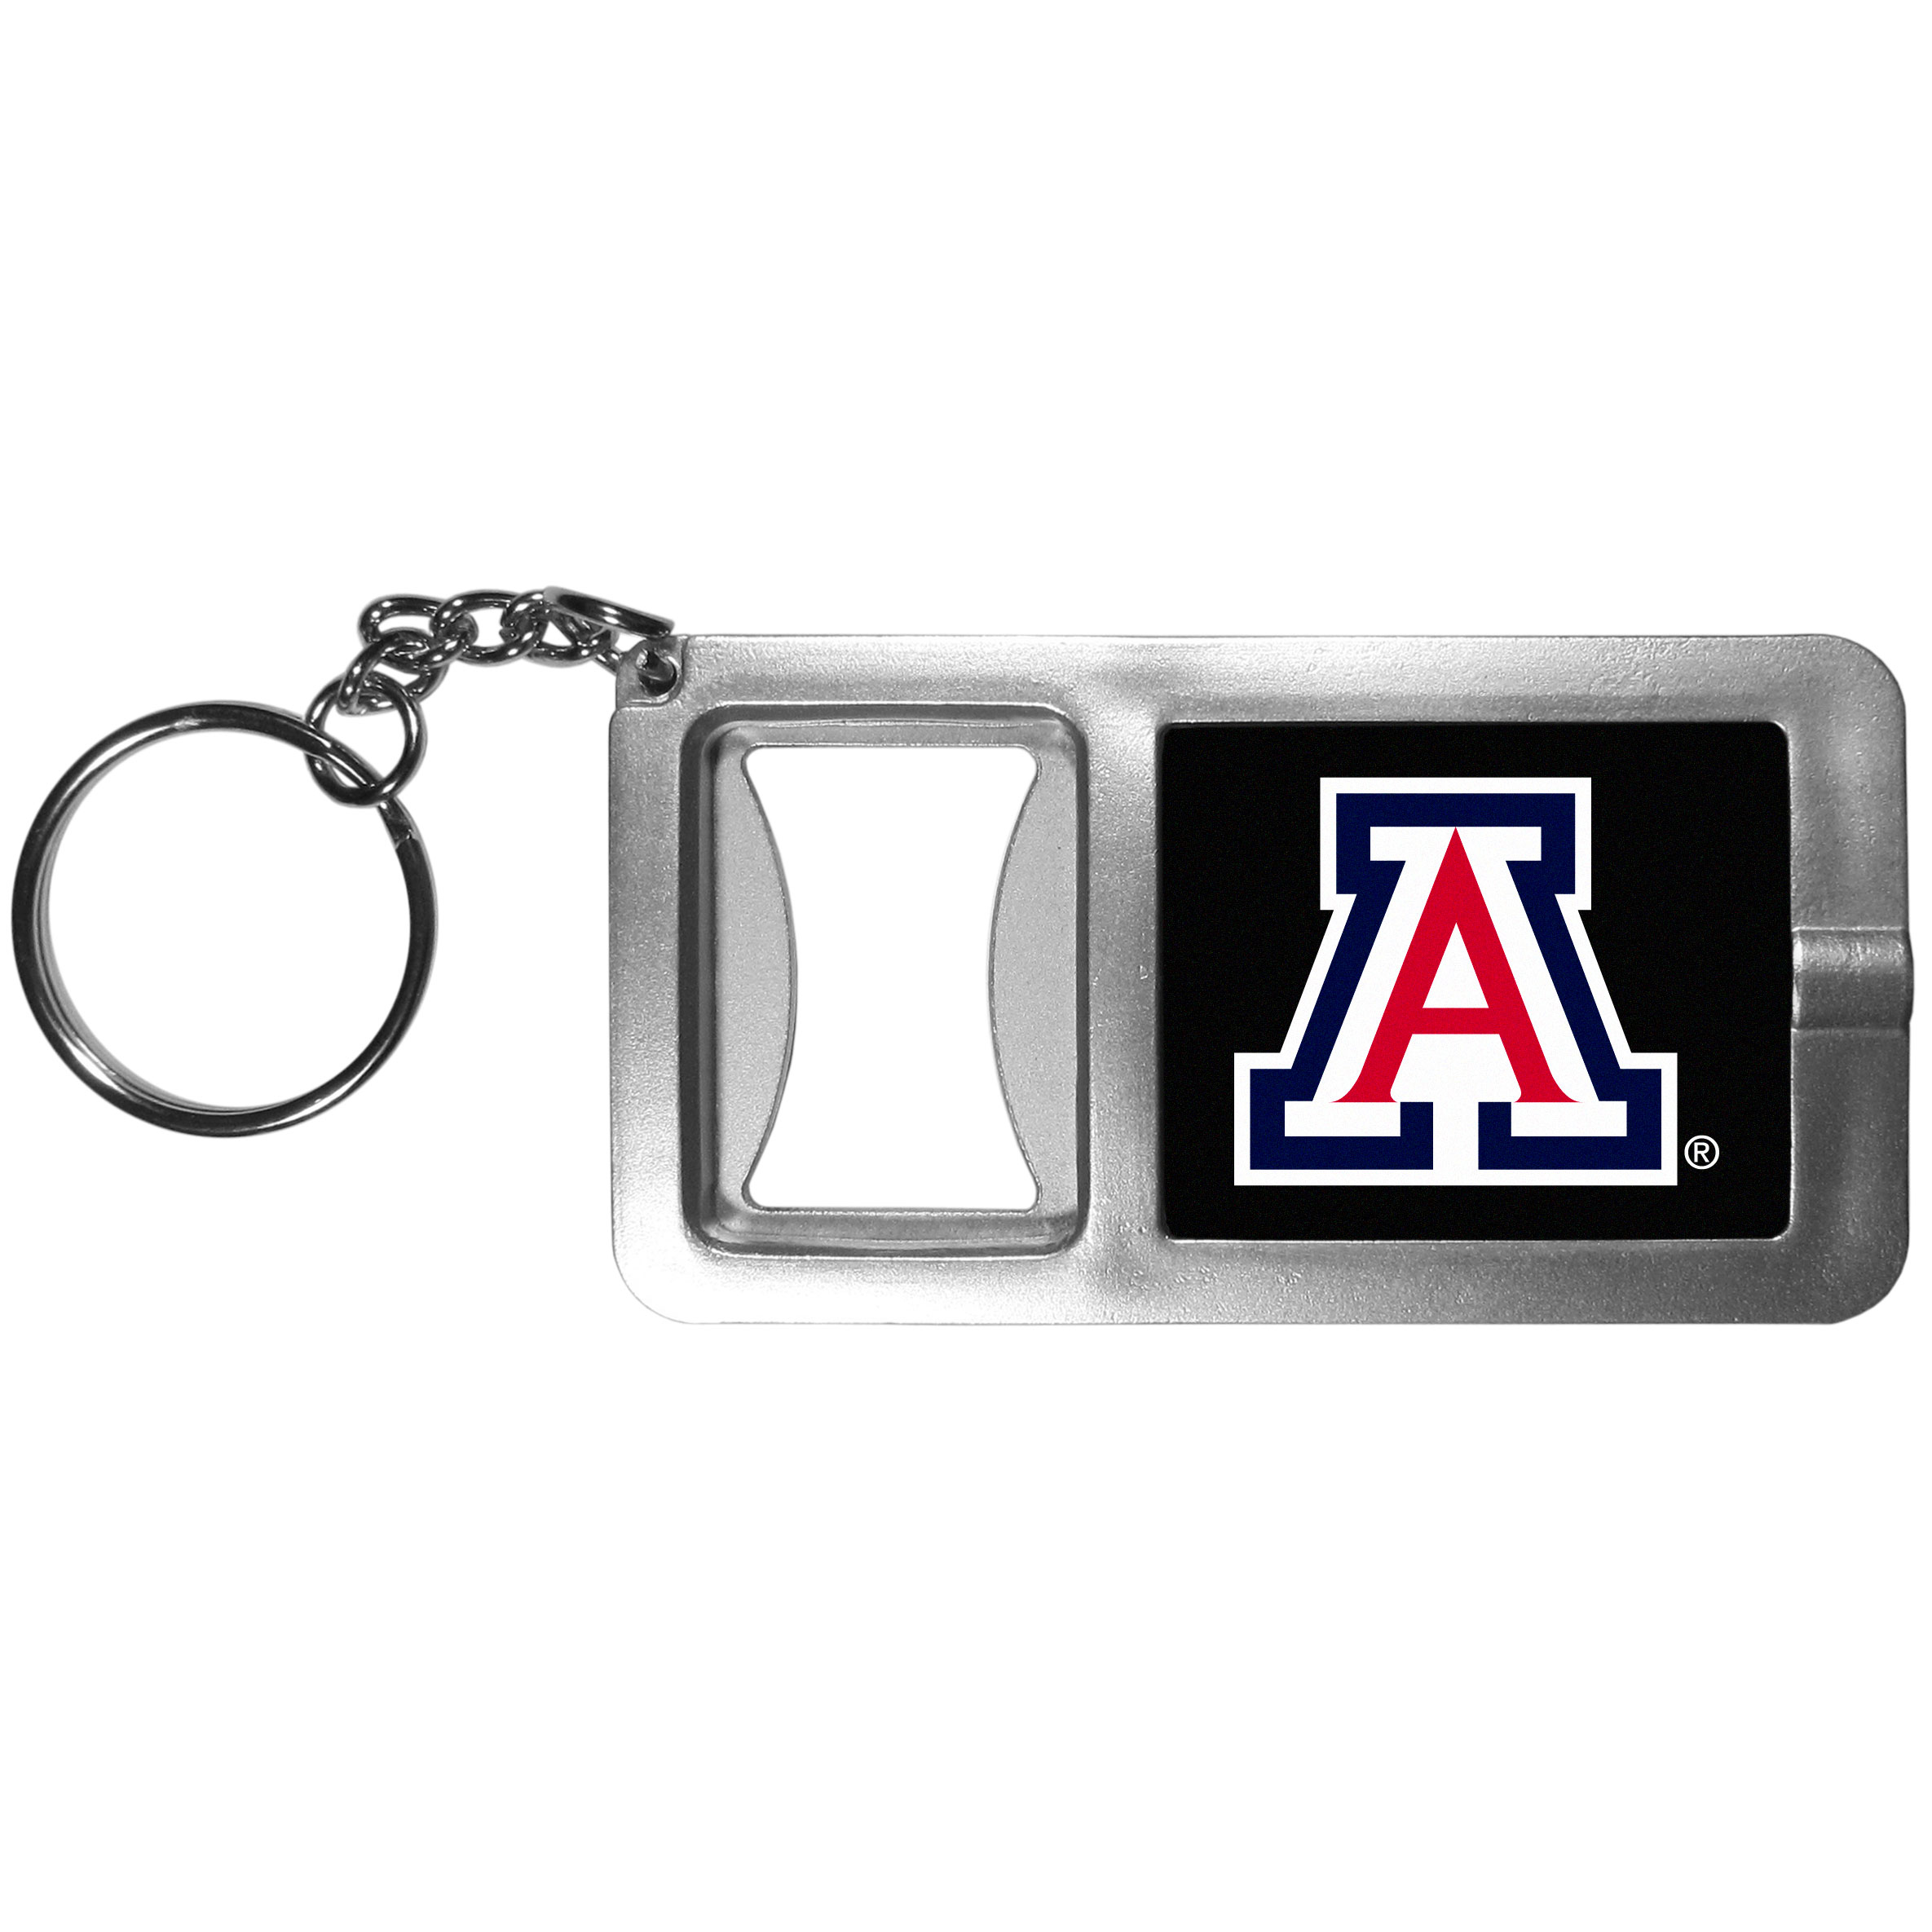 Arizona Wildcats Flashlight Key Chain with Bottle Opener - Never be without light with our Arizona Wildcats flashlight keychain that features a handy bottle opener feature. This versatile key chain is perfect for camping and travel and is a great way to show off your team pride!